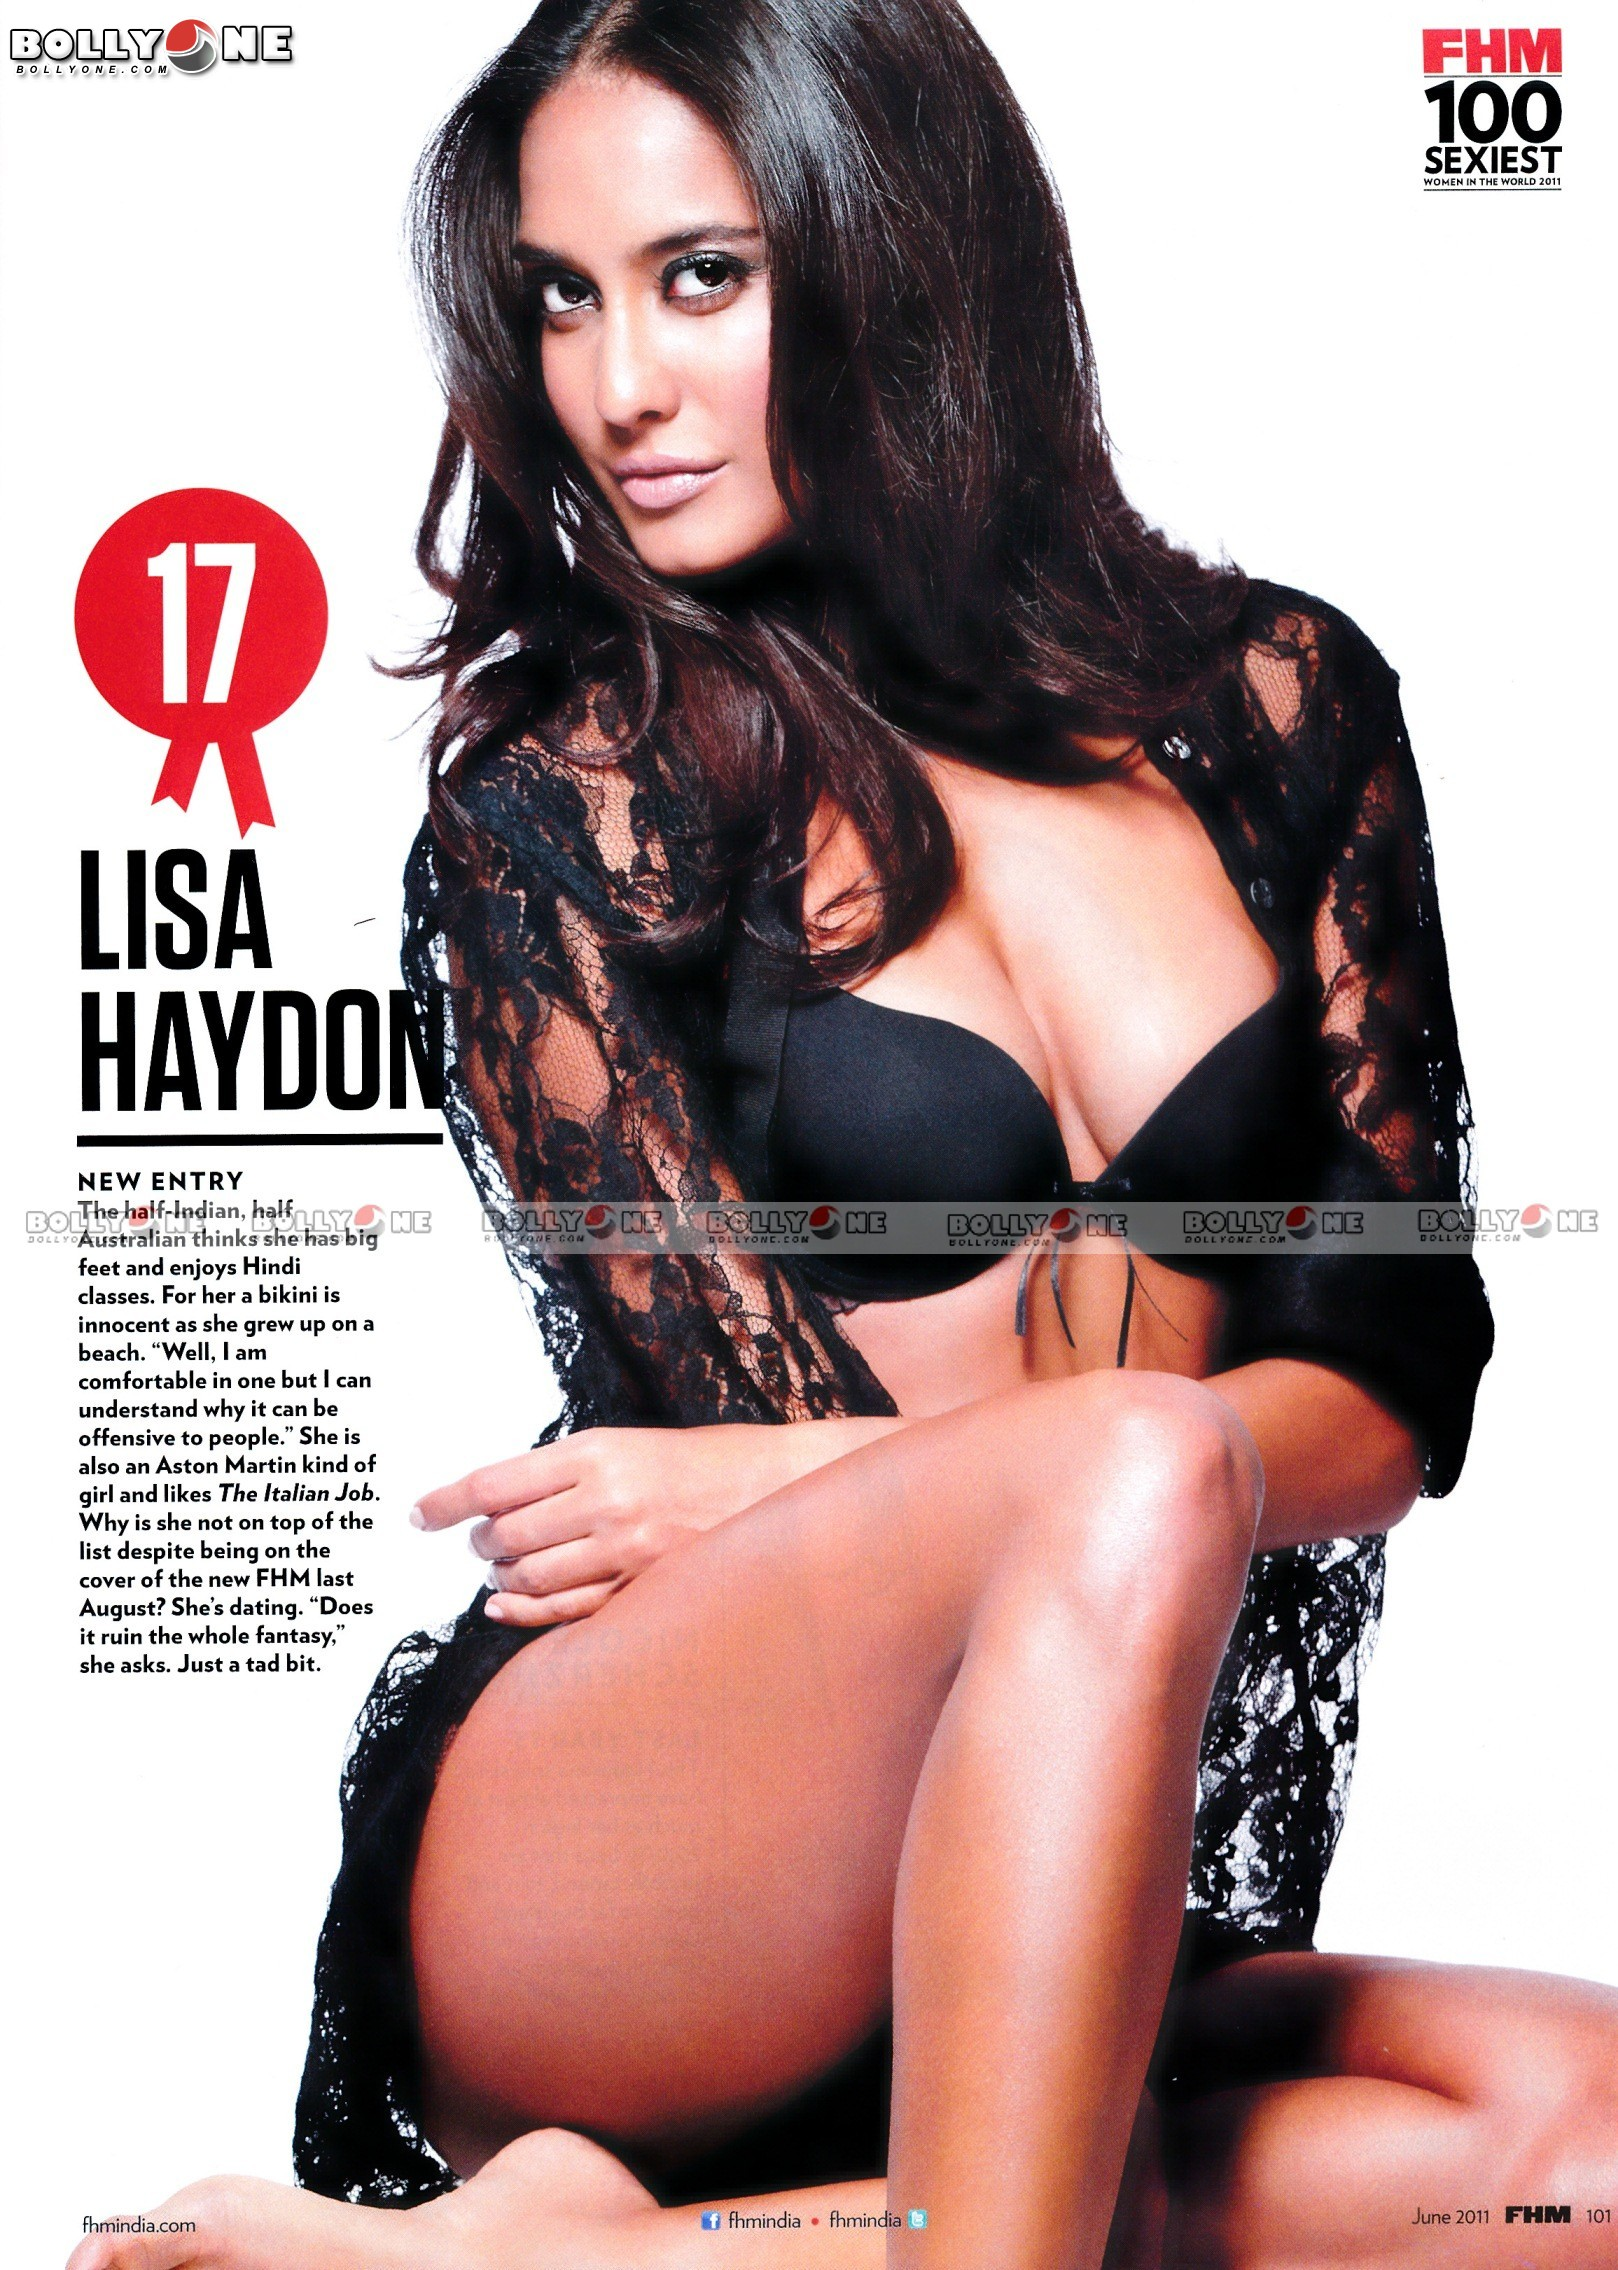 HQ PICS - FHM Top 100 Sexiest Women - ONLY BOLLYWOOD STARS n MODELS - HQ MAGAZINE pix